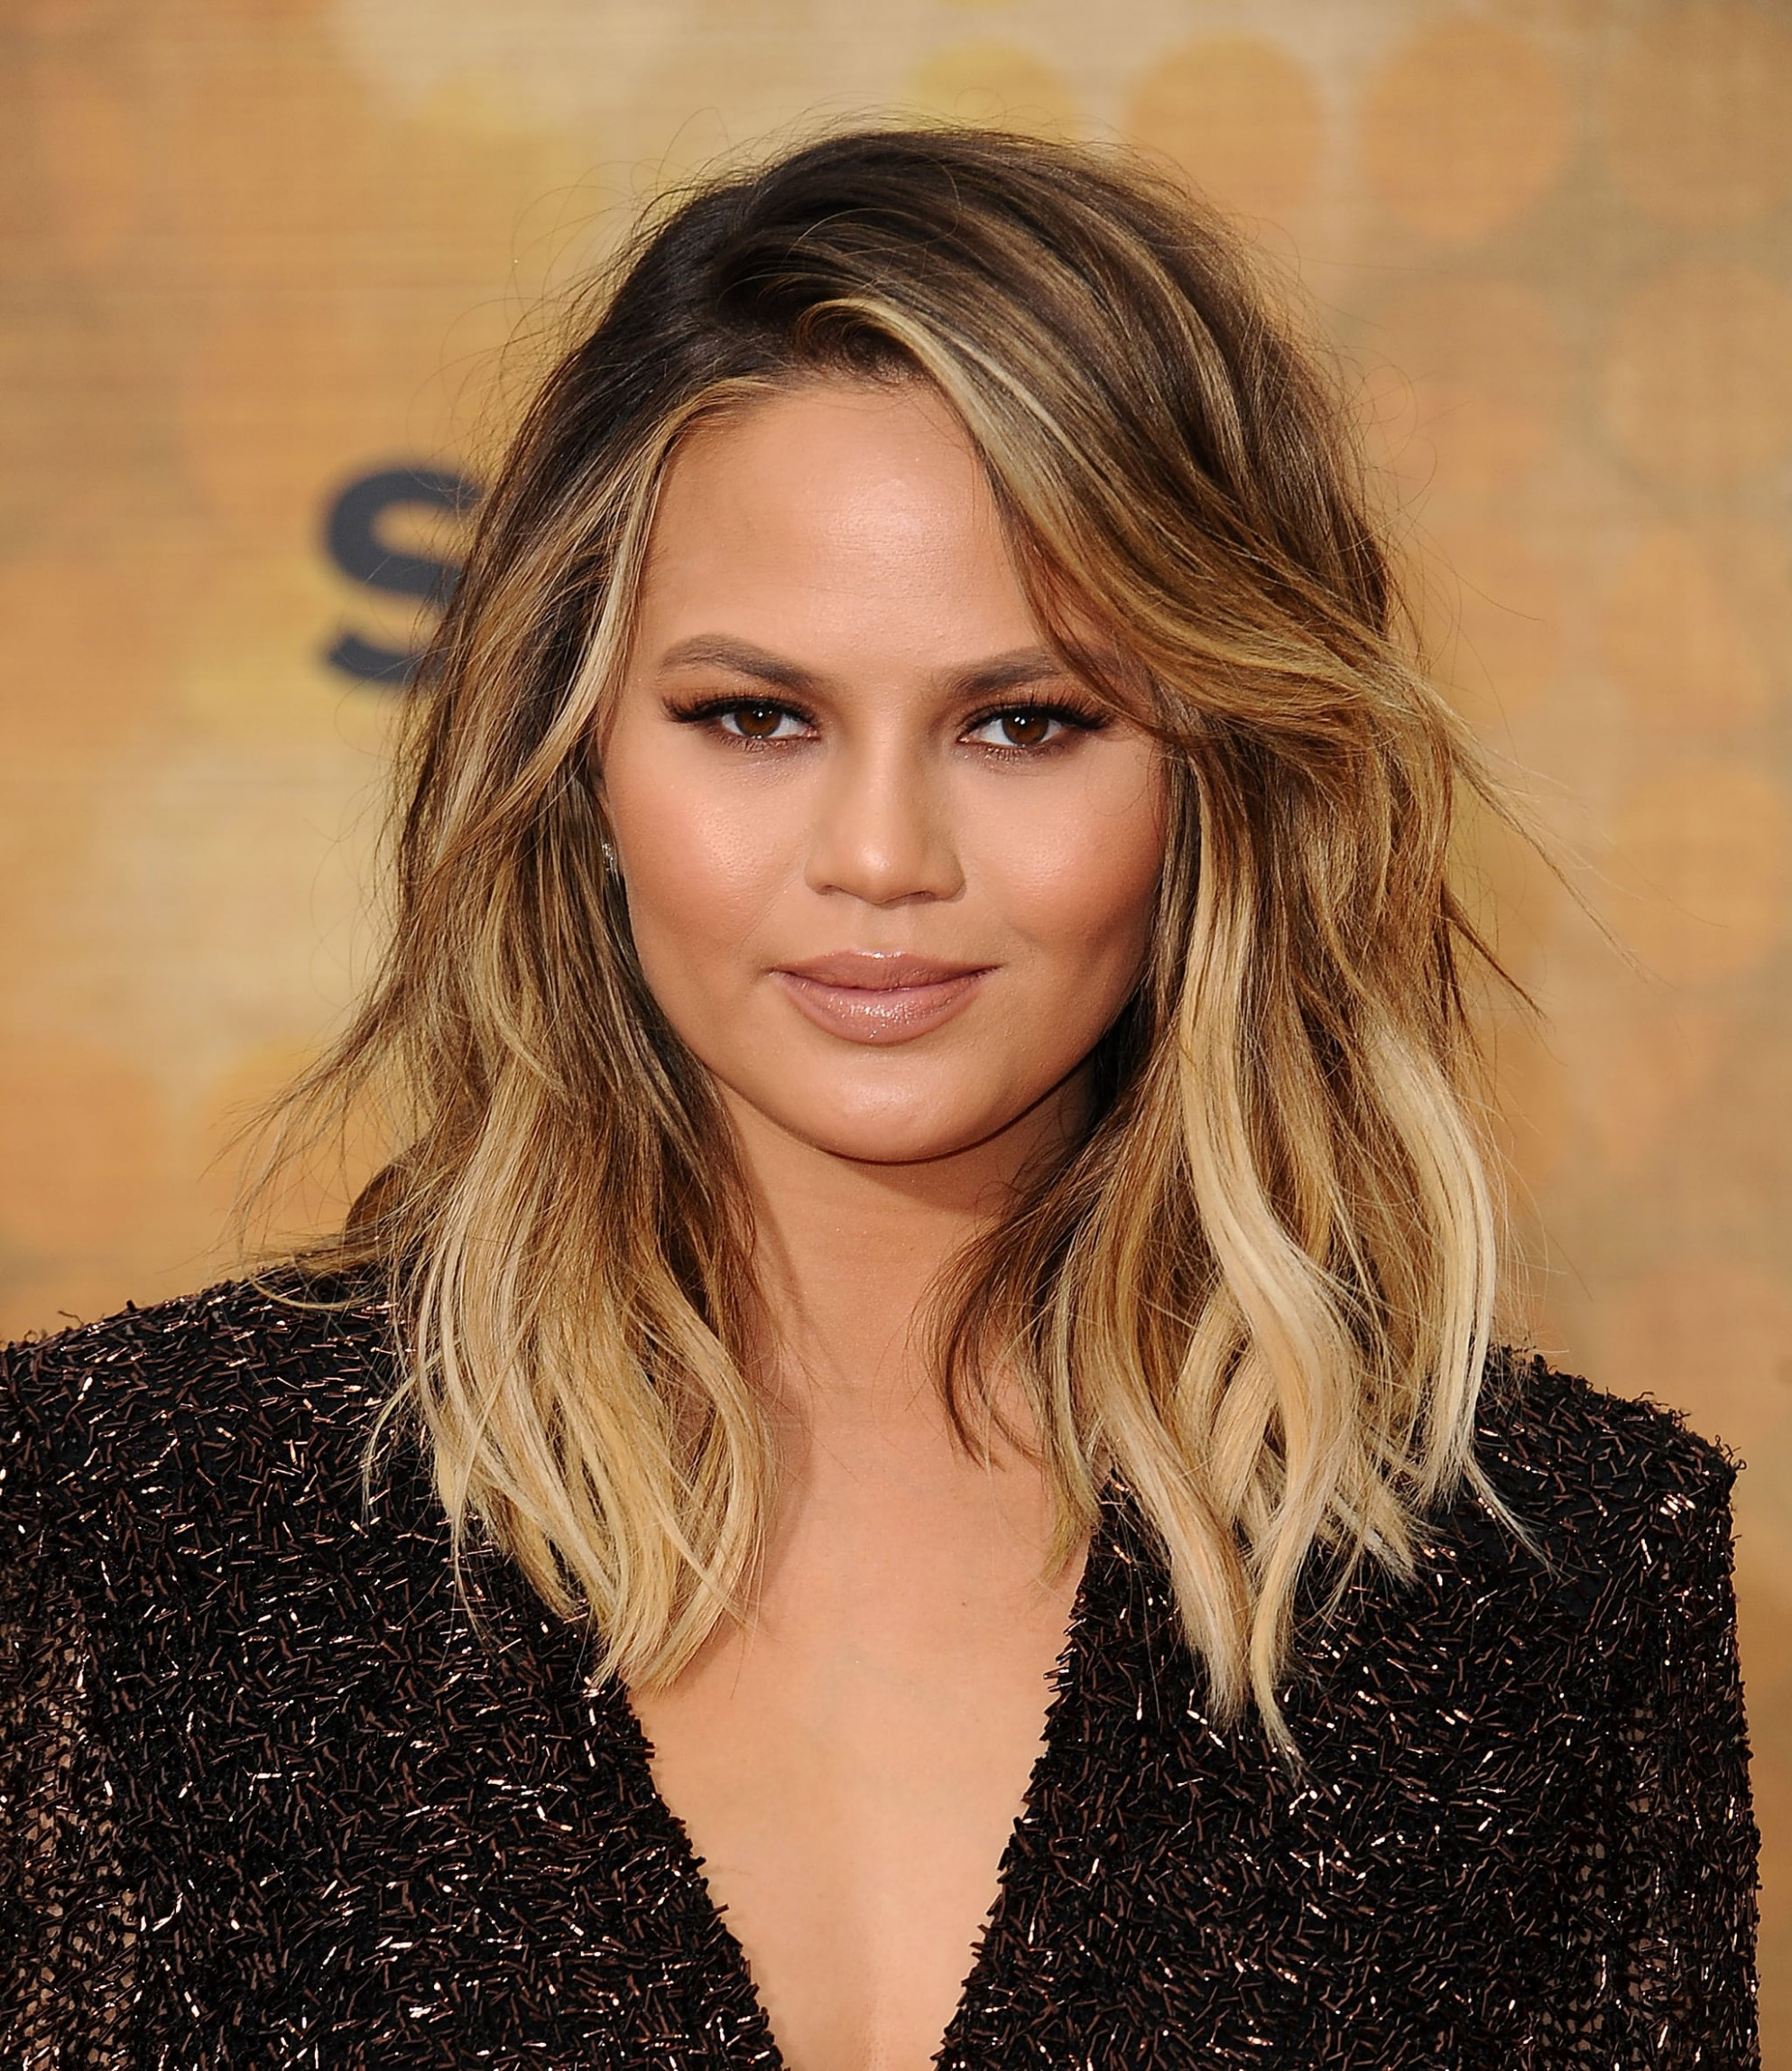 Best Haircuts For Round Faces, According To A Hairstylist Haircuts For Full Faces